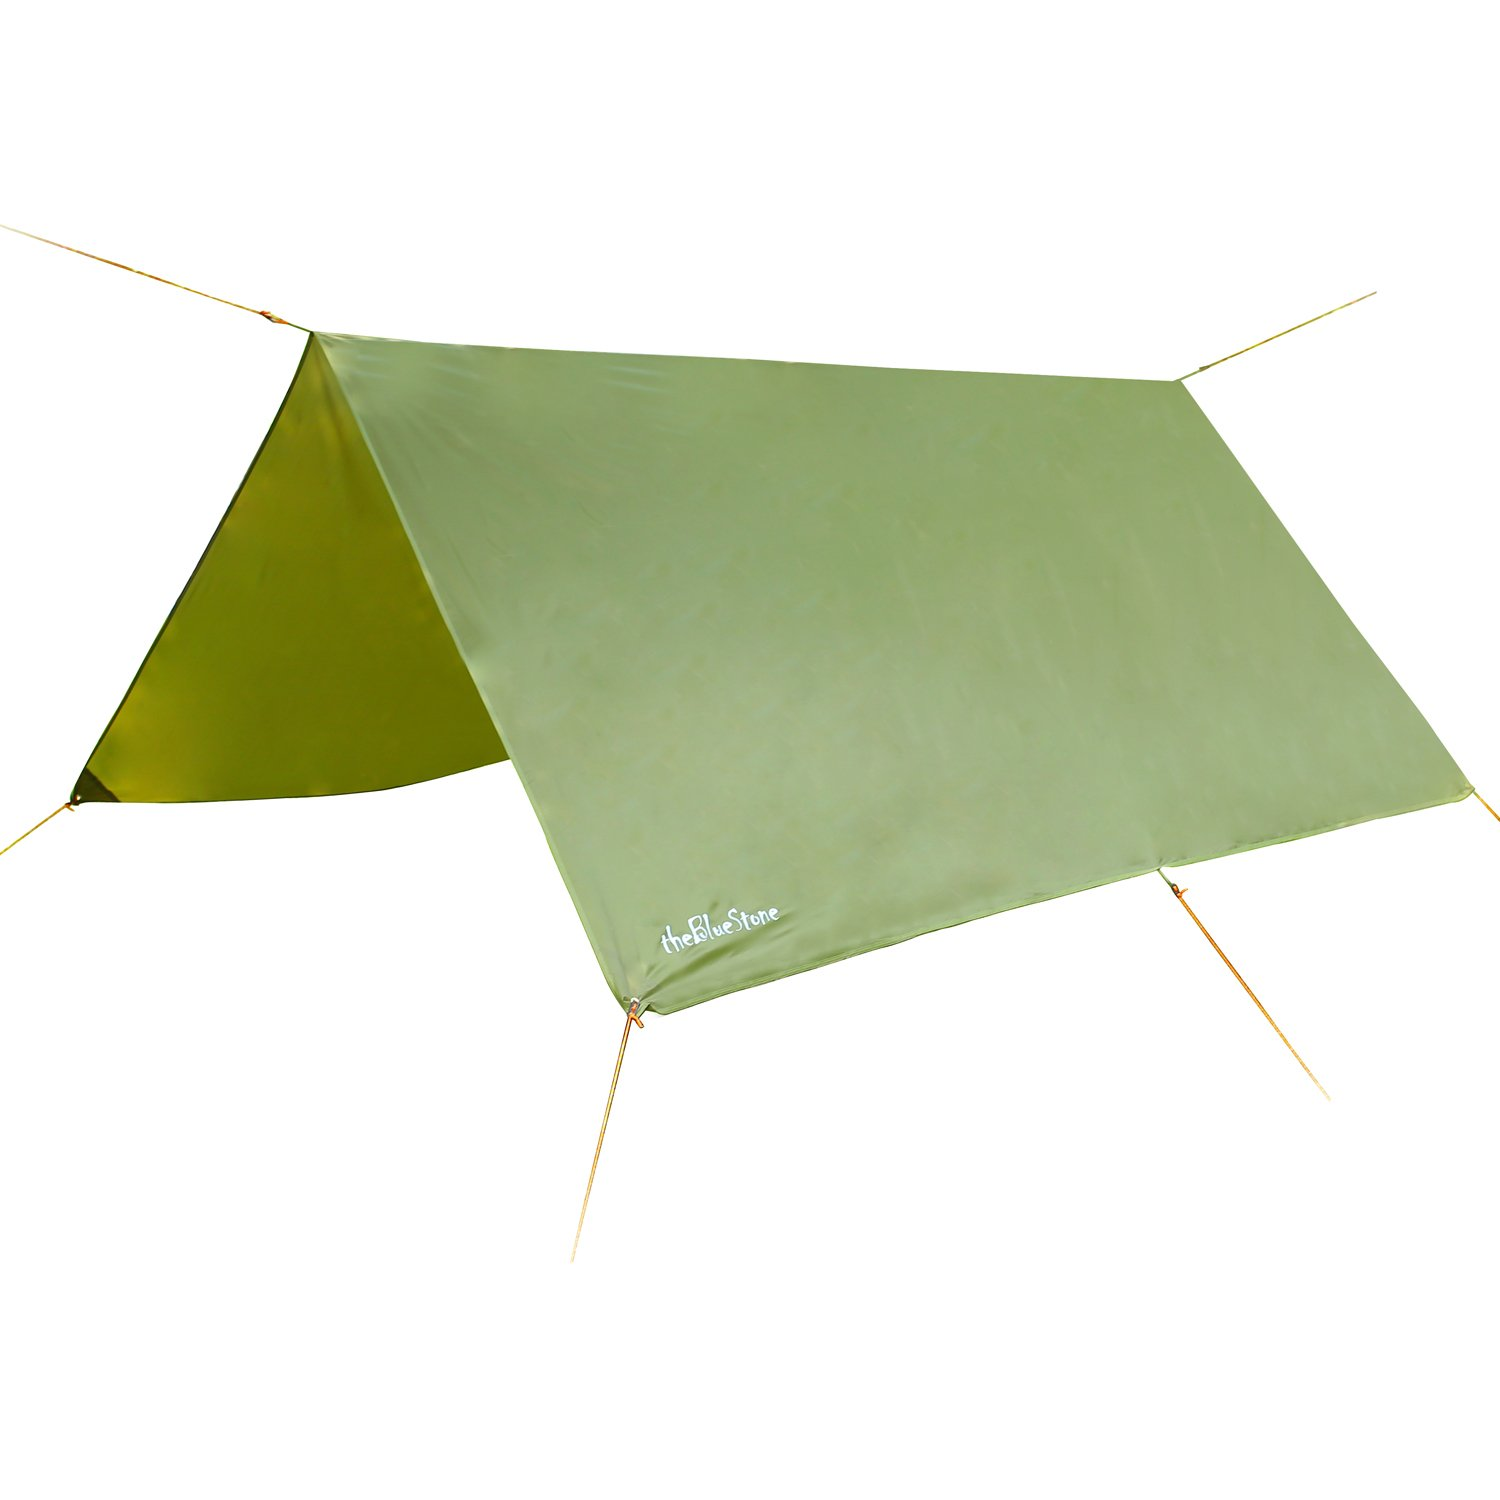 3m x 3m - Waterproof, Lightweight, Compact & Strong Green Tarpaulin for Camping by theBlueStone